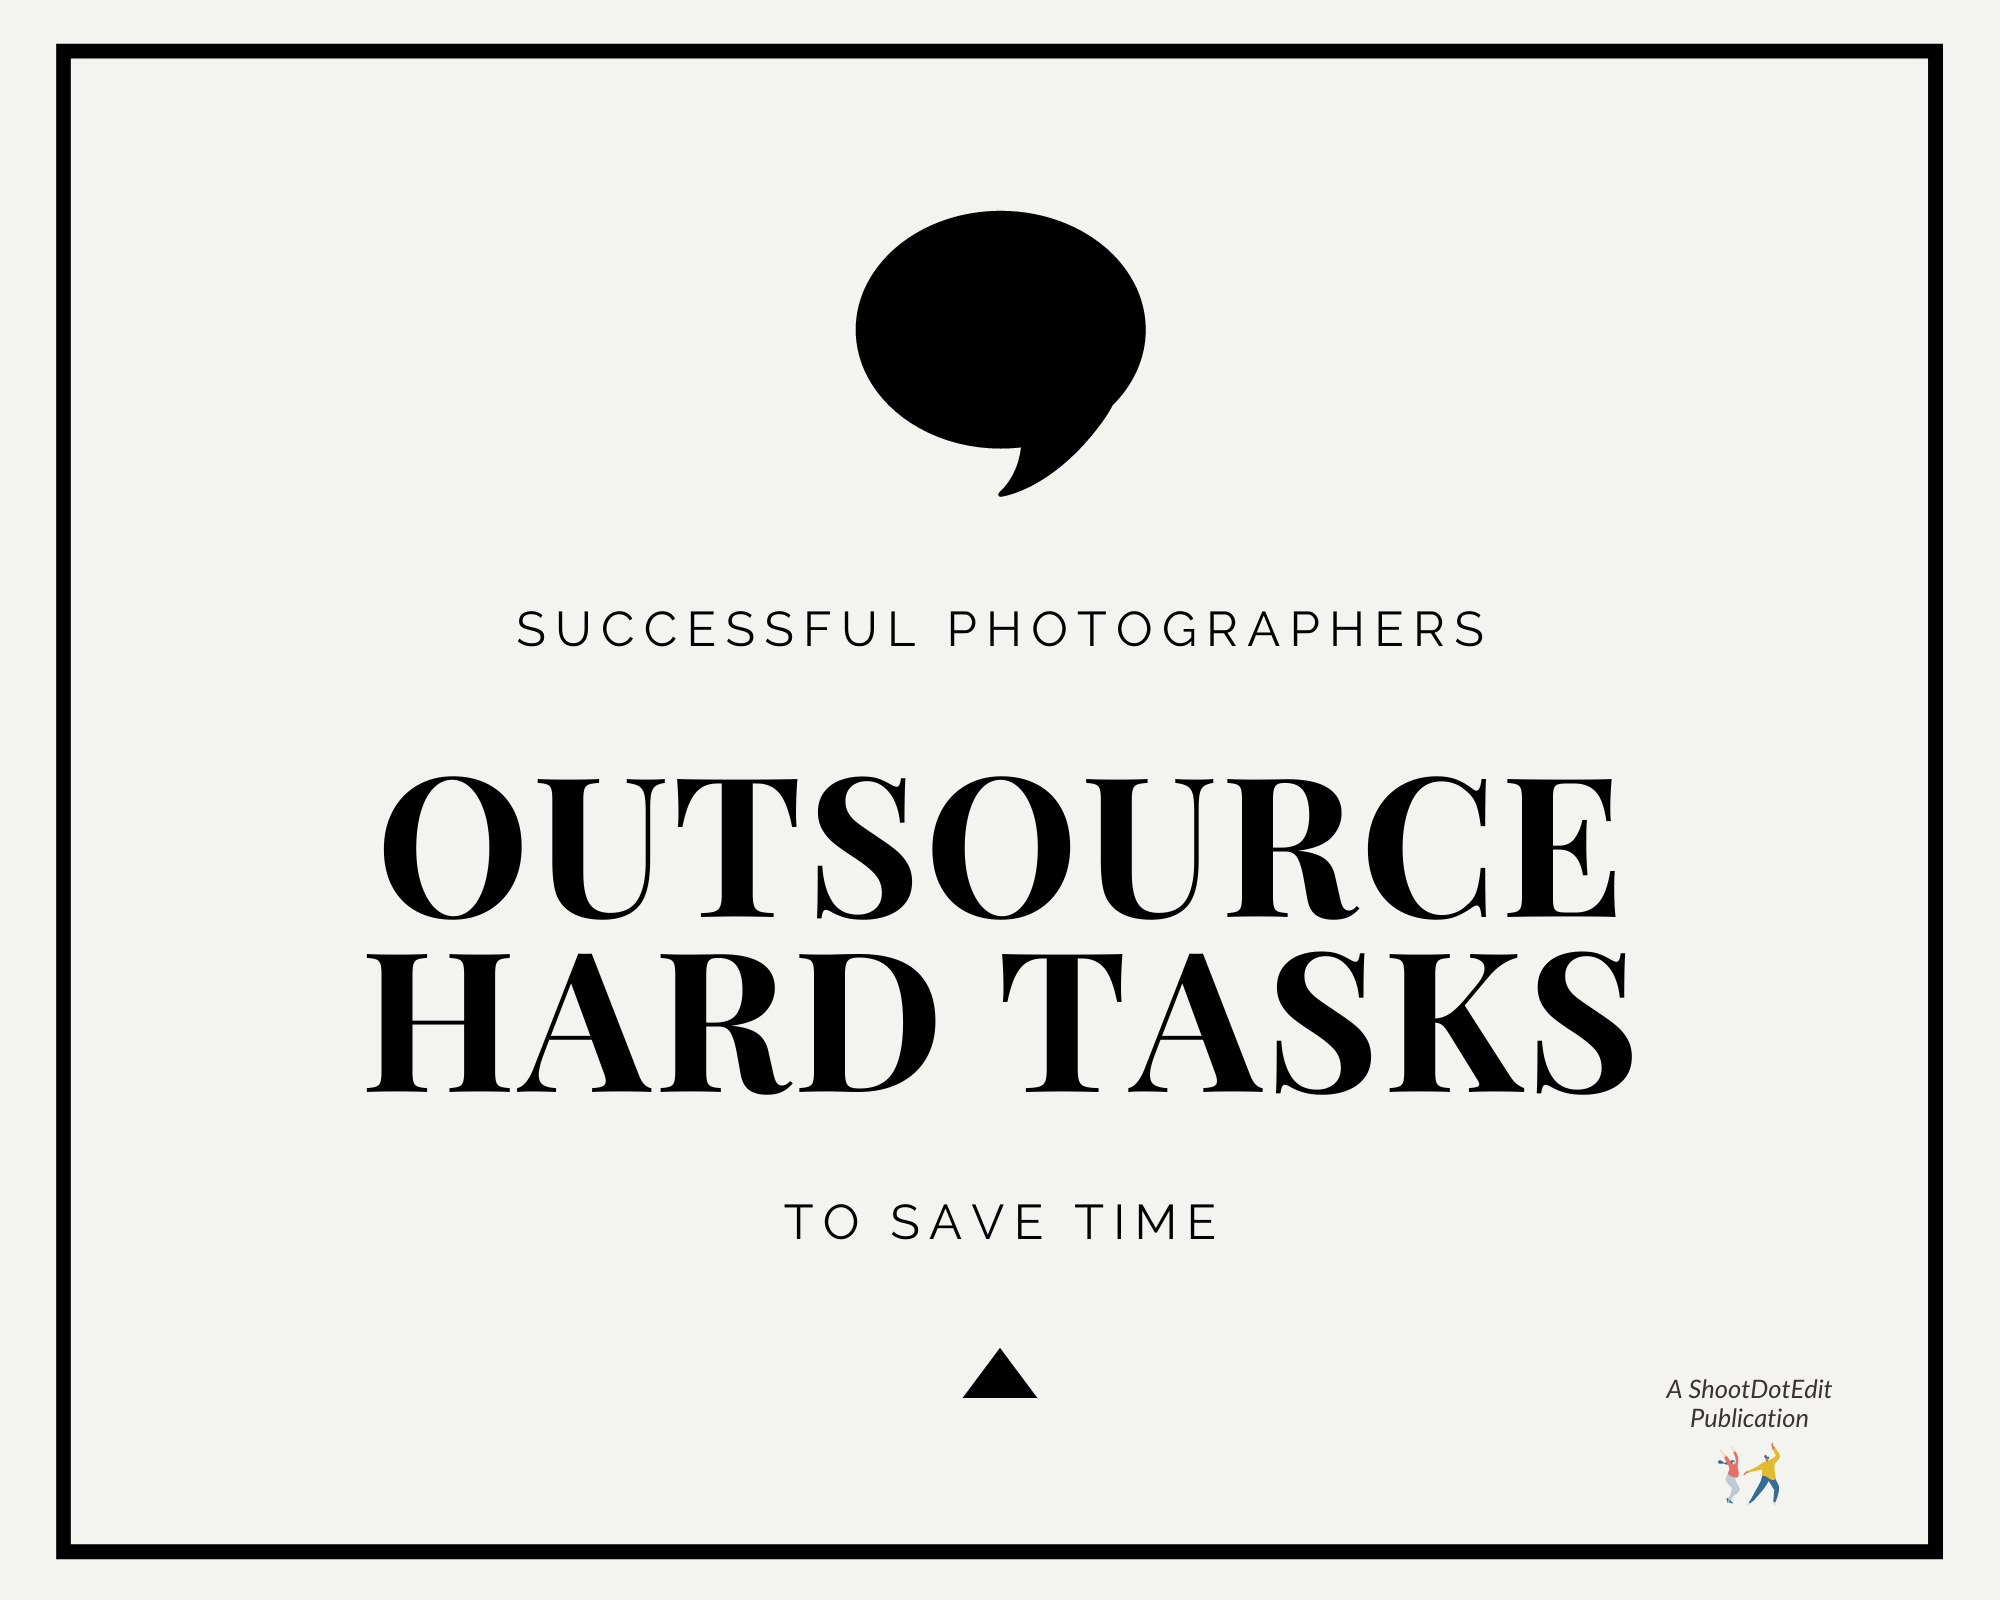 Infographic stating successful photographers outsource hard tasks to save time